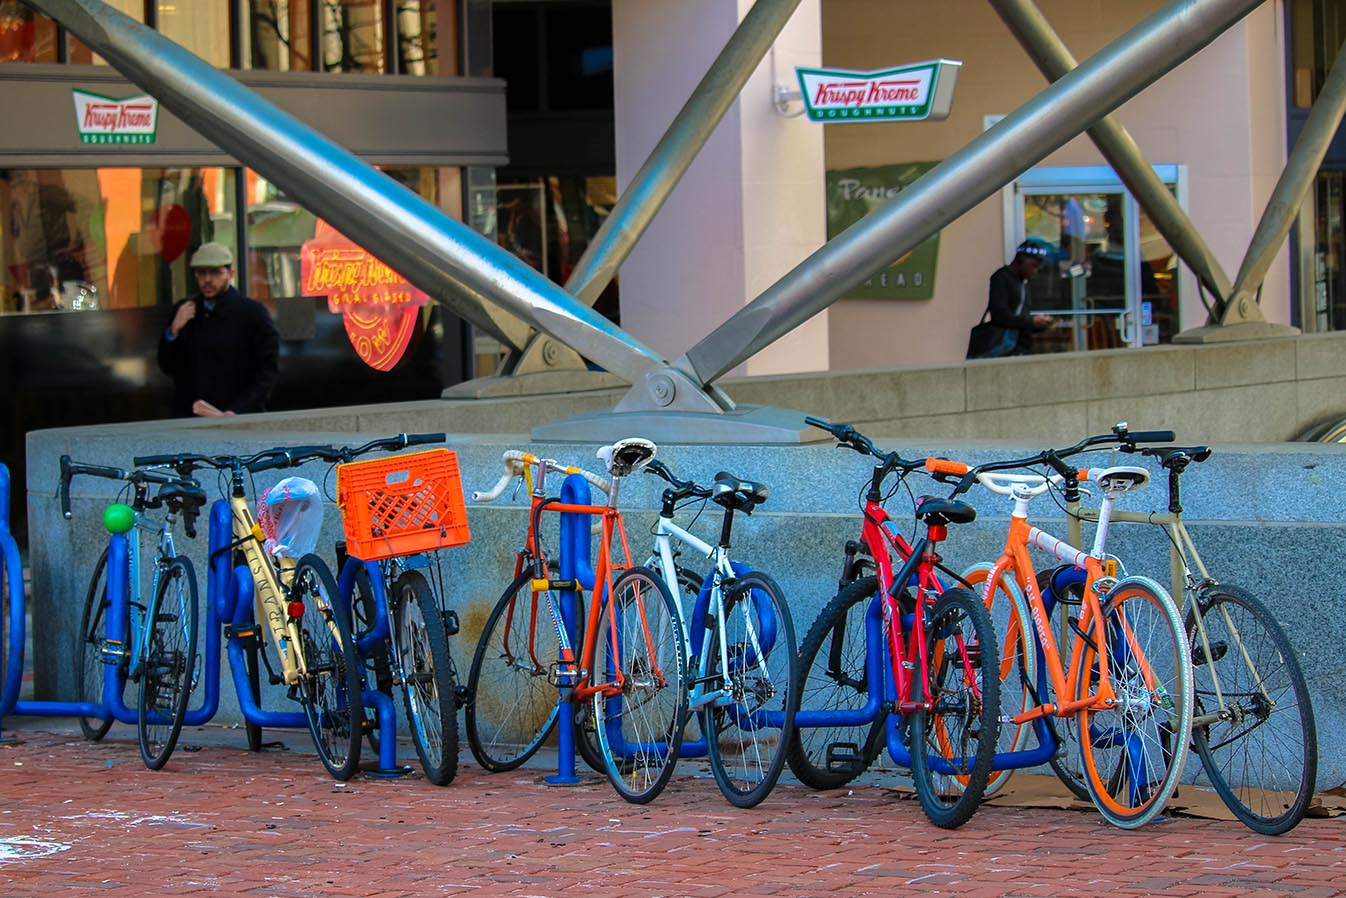 Bikes parked in Dupont Circle, Washington, D.C.